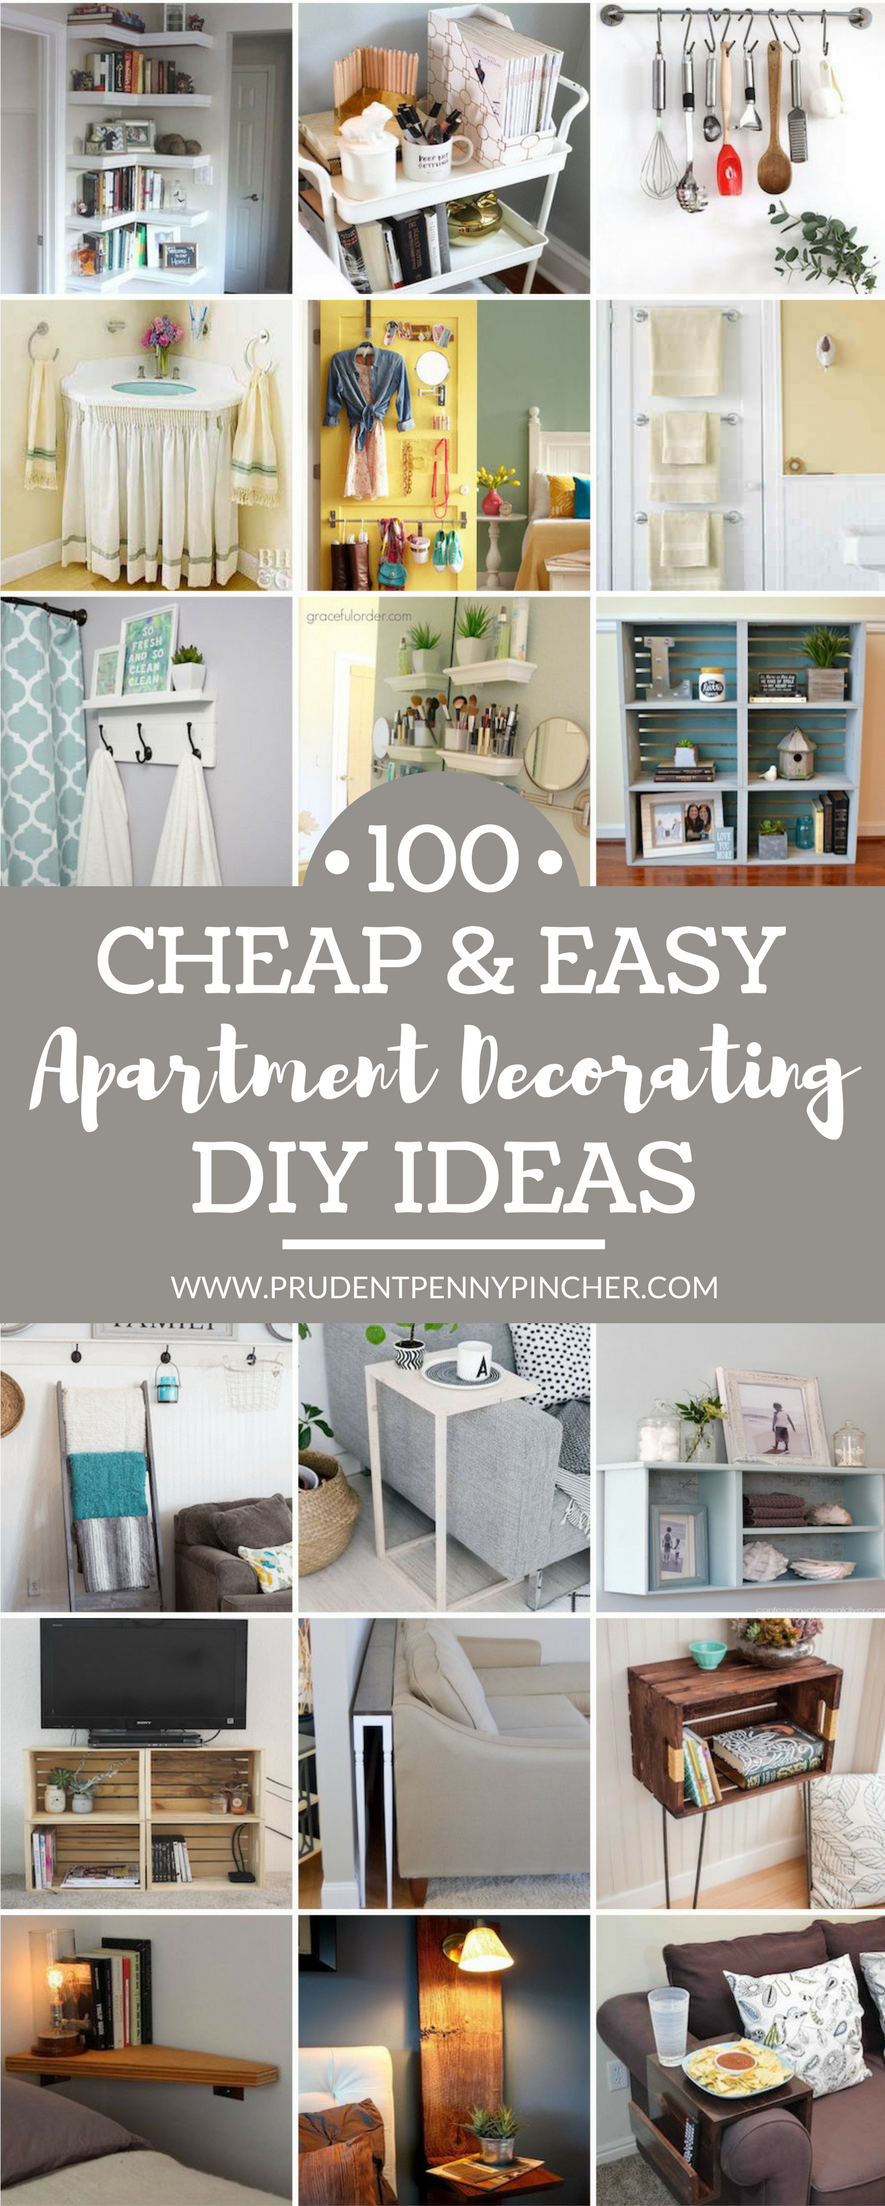 100 cheap and easy diy apartment decorating ideas Apartment decorating cheap ideas